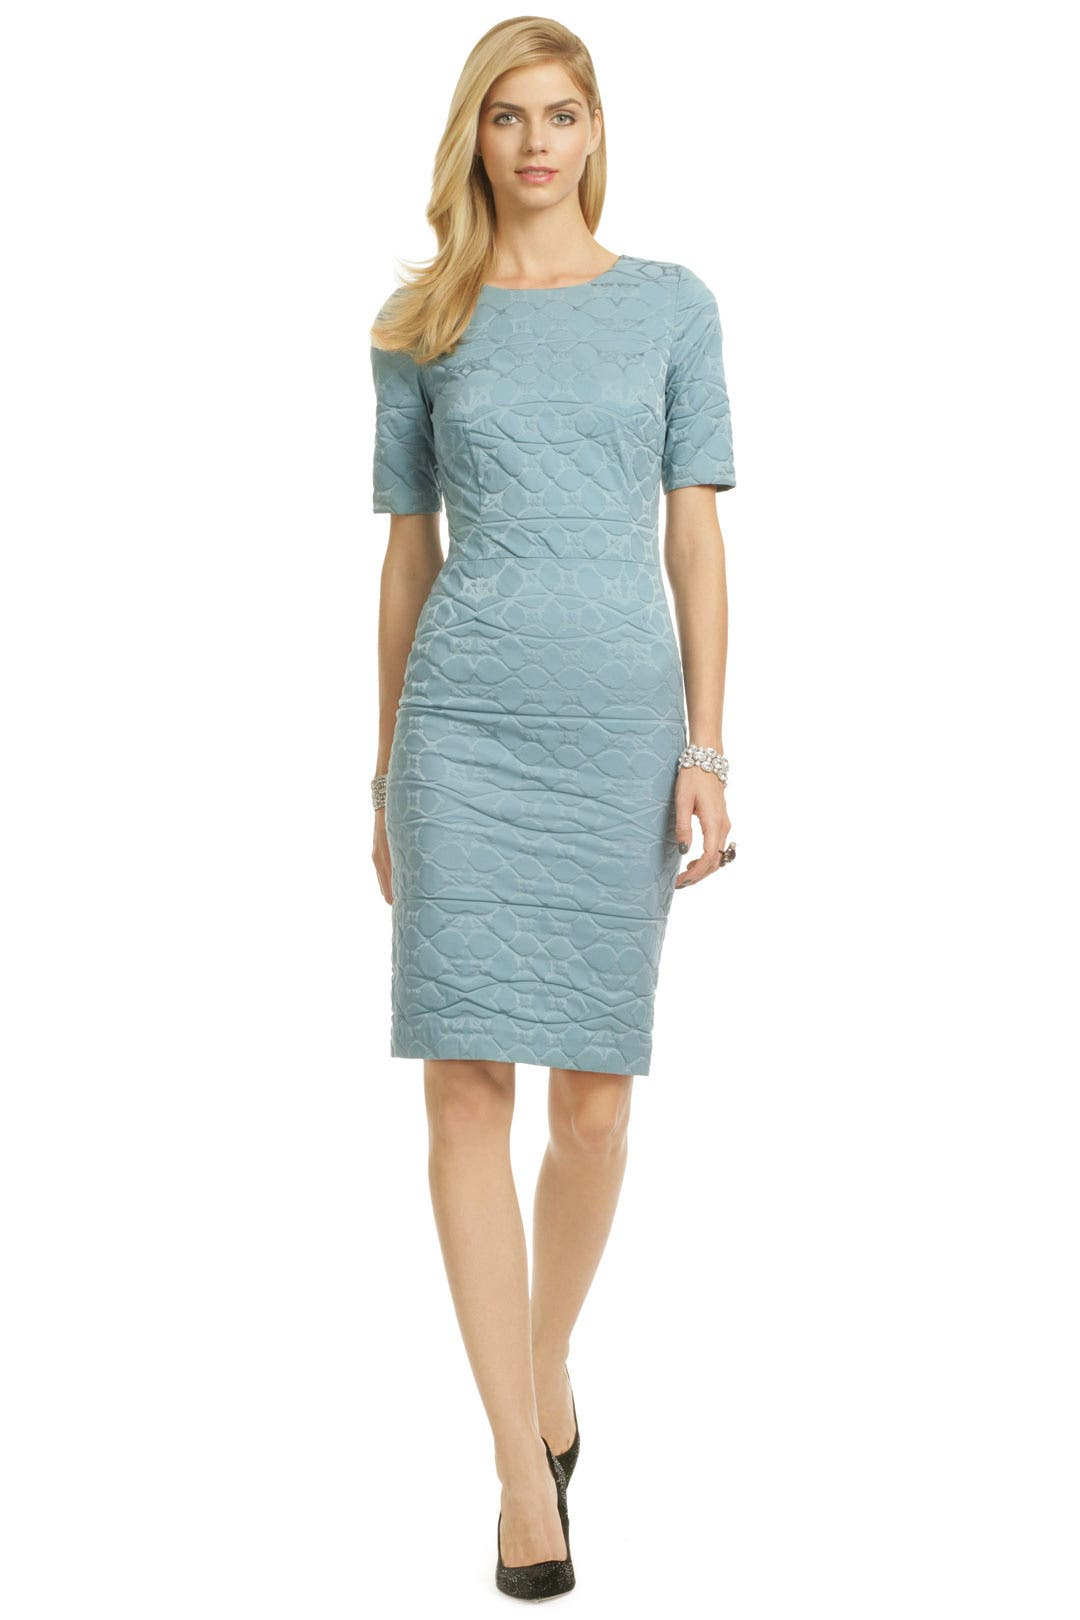 Blue Ripple Marks Sheath by Vera Wang for $209 | Rent the Runway